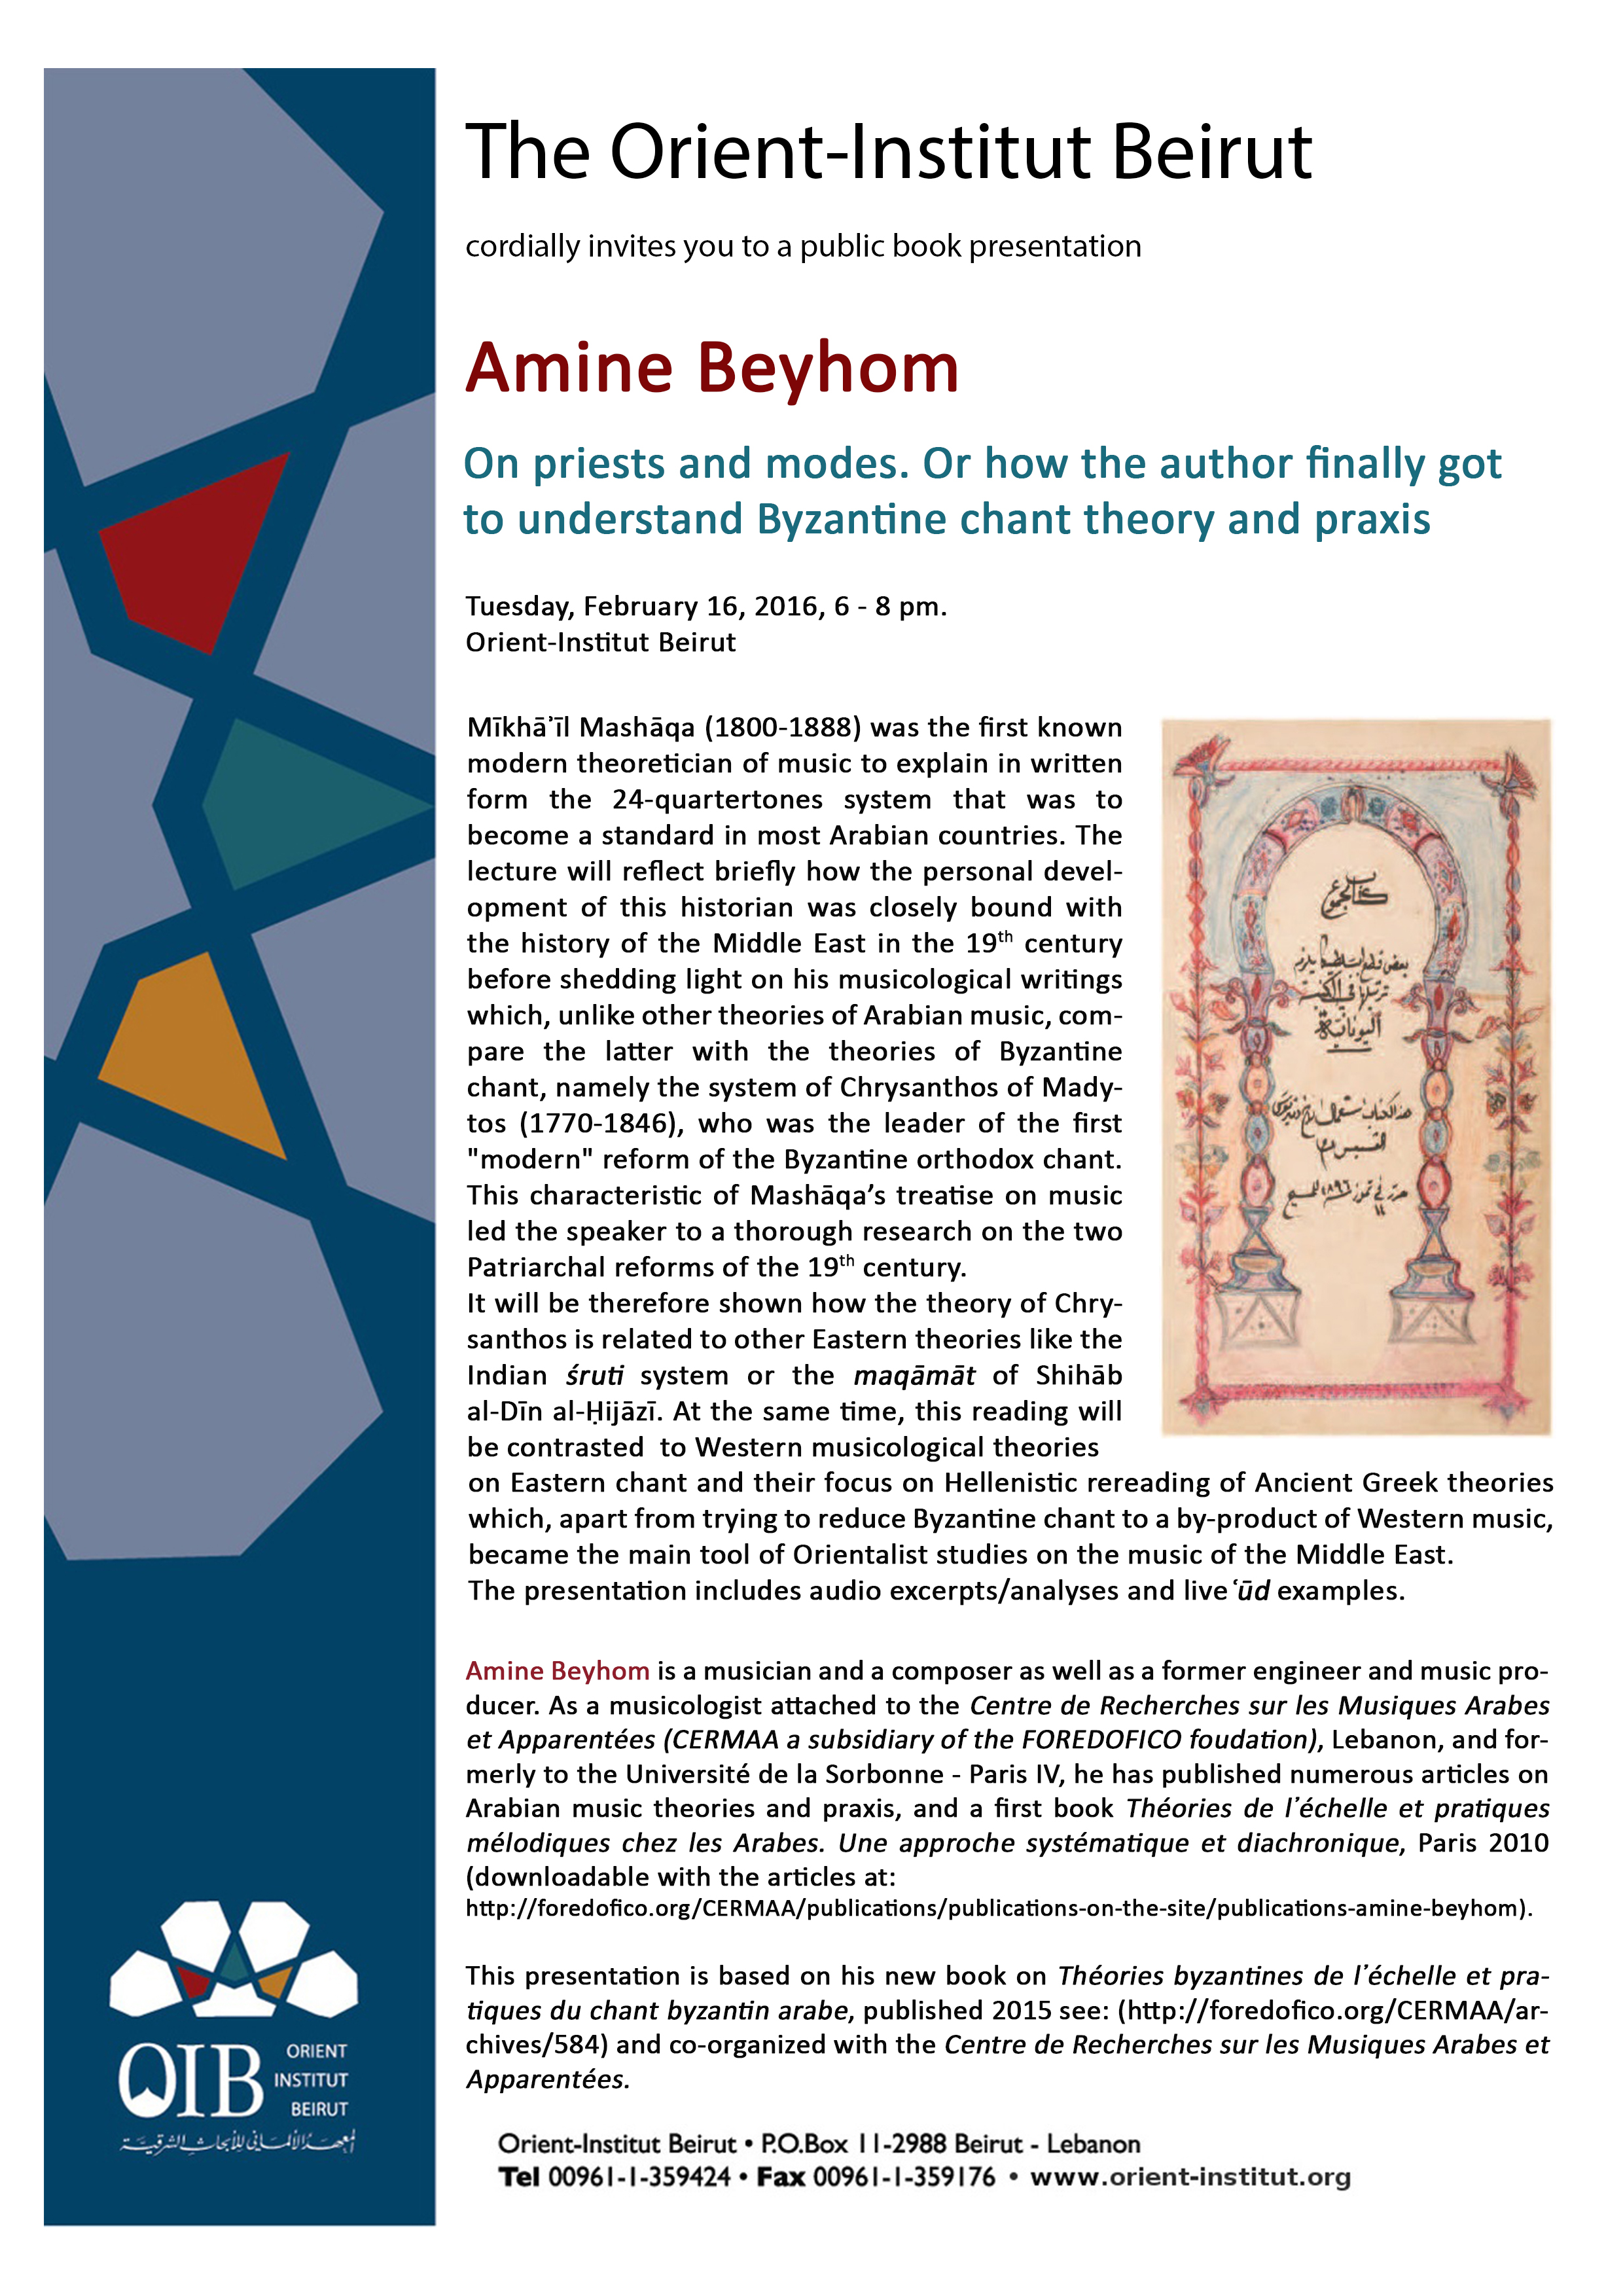 Public presentation of Amine Beyhom's book on Byzantine chant – Orient Institut Beirut – 16th February 2016